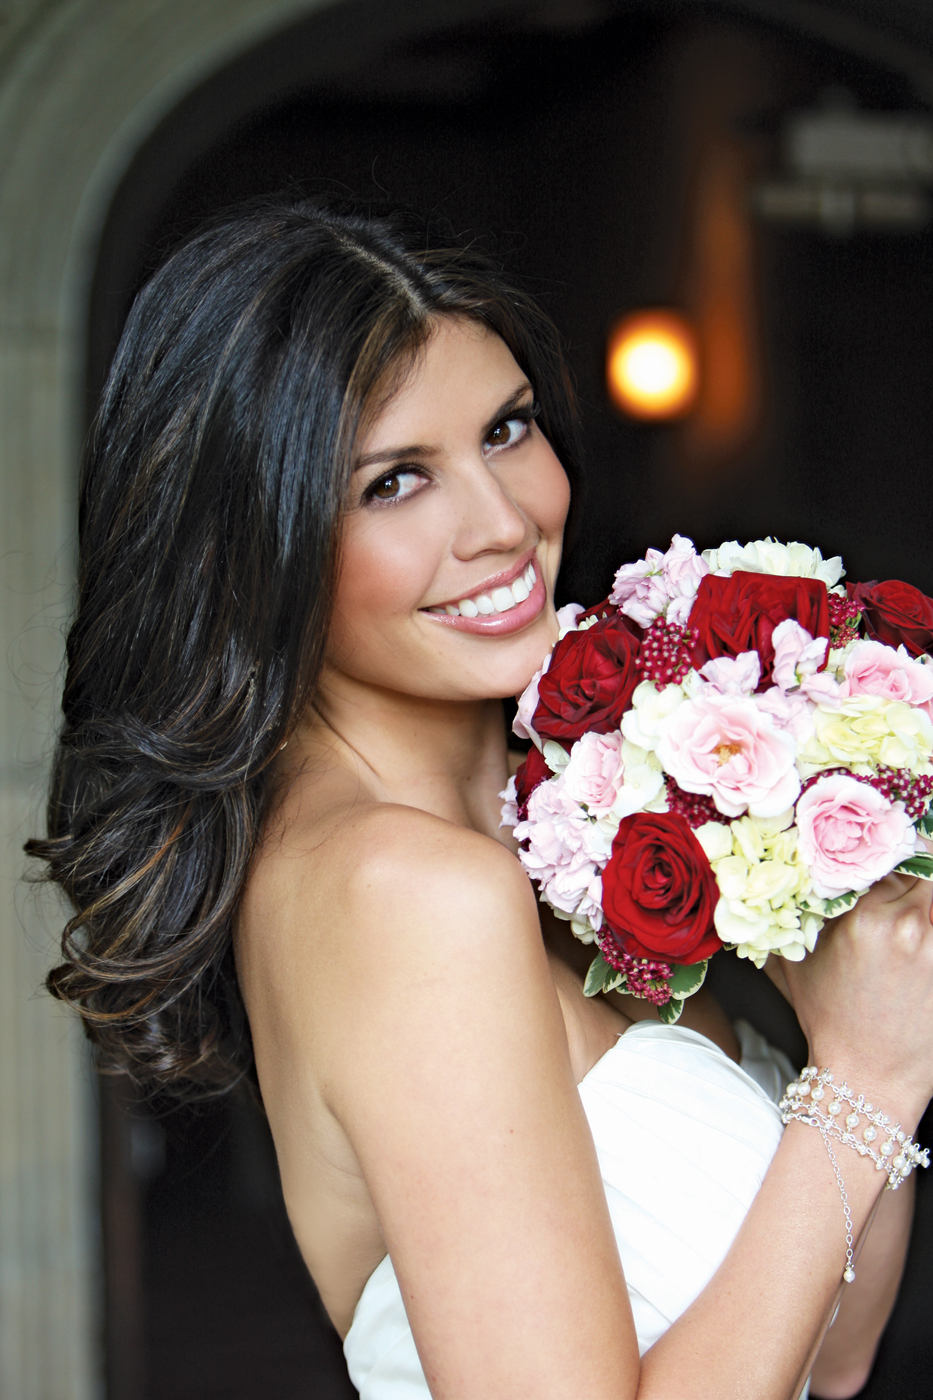 Wedding Makeup Tips At Home : Bridal Beauty Tips from Bridal By Michele